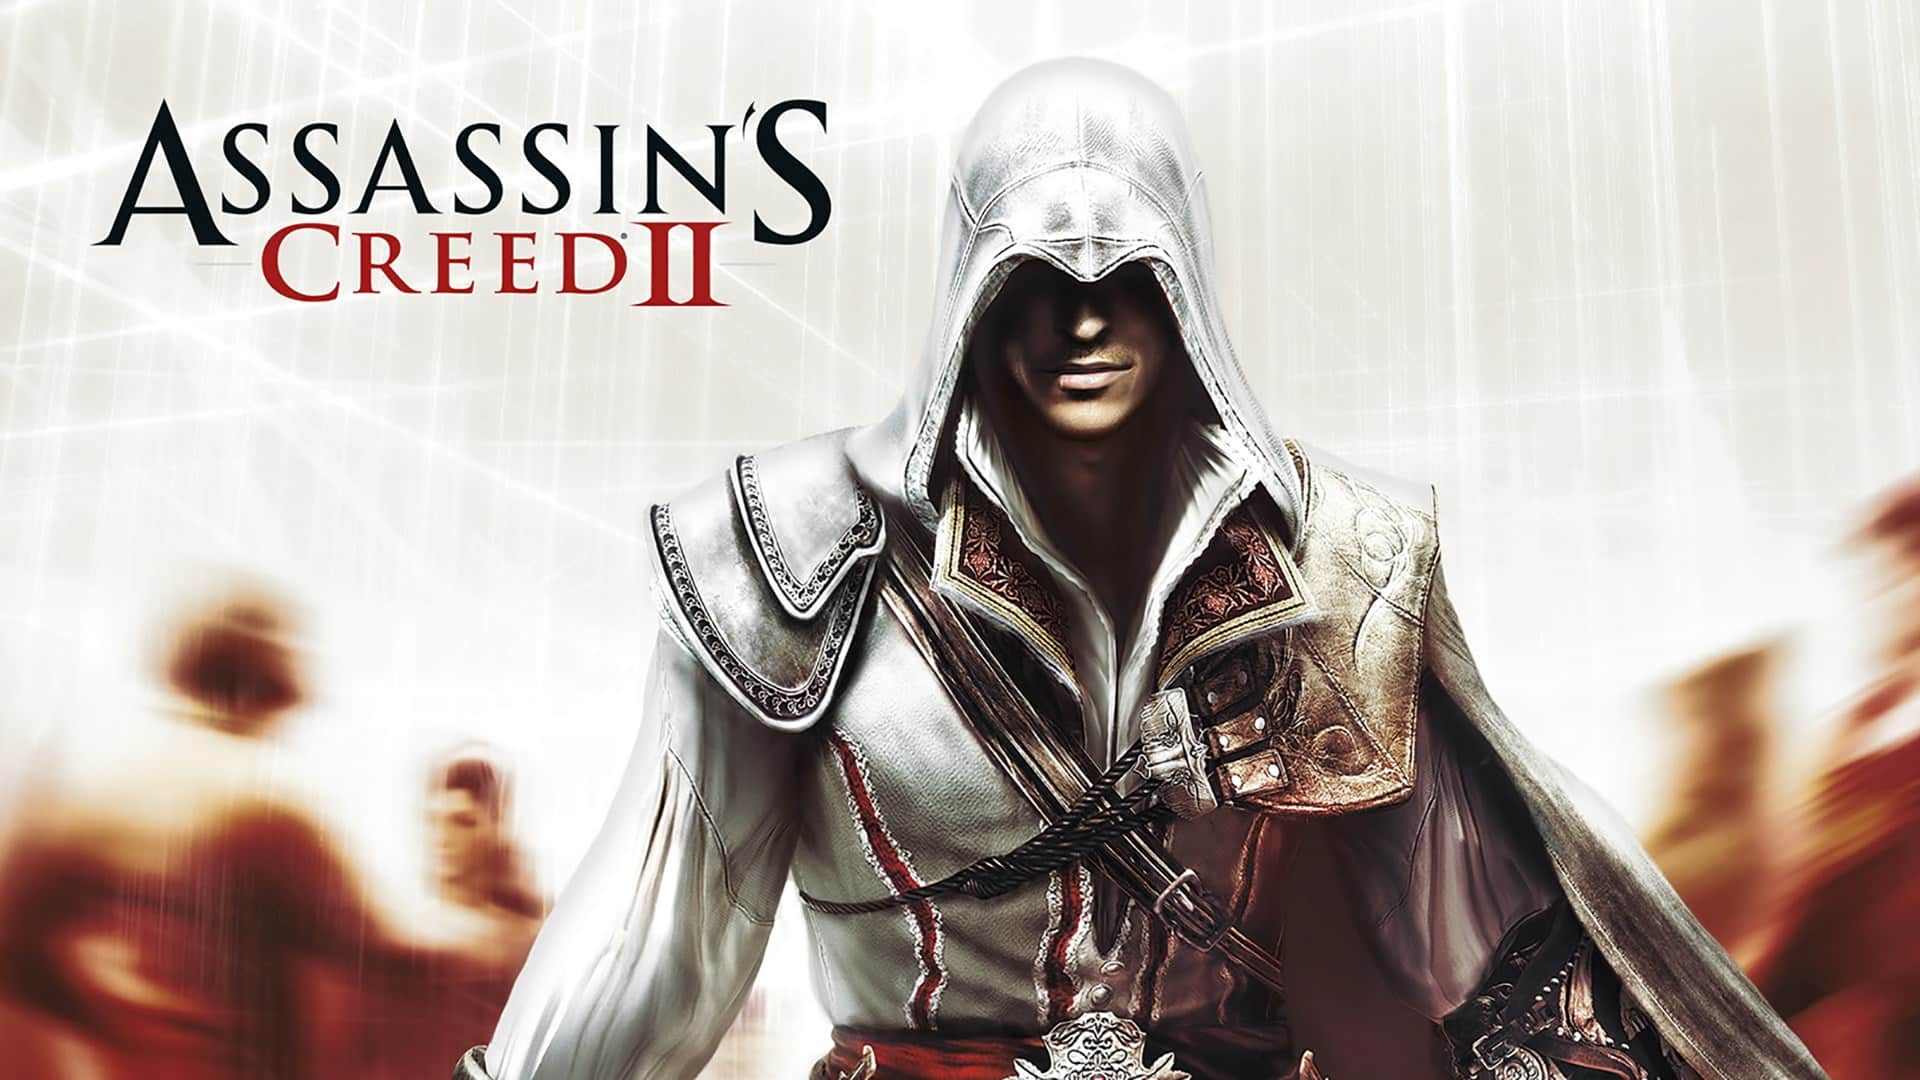 Assassins Creed 2 Free Games